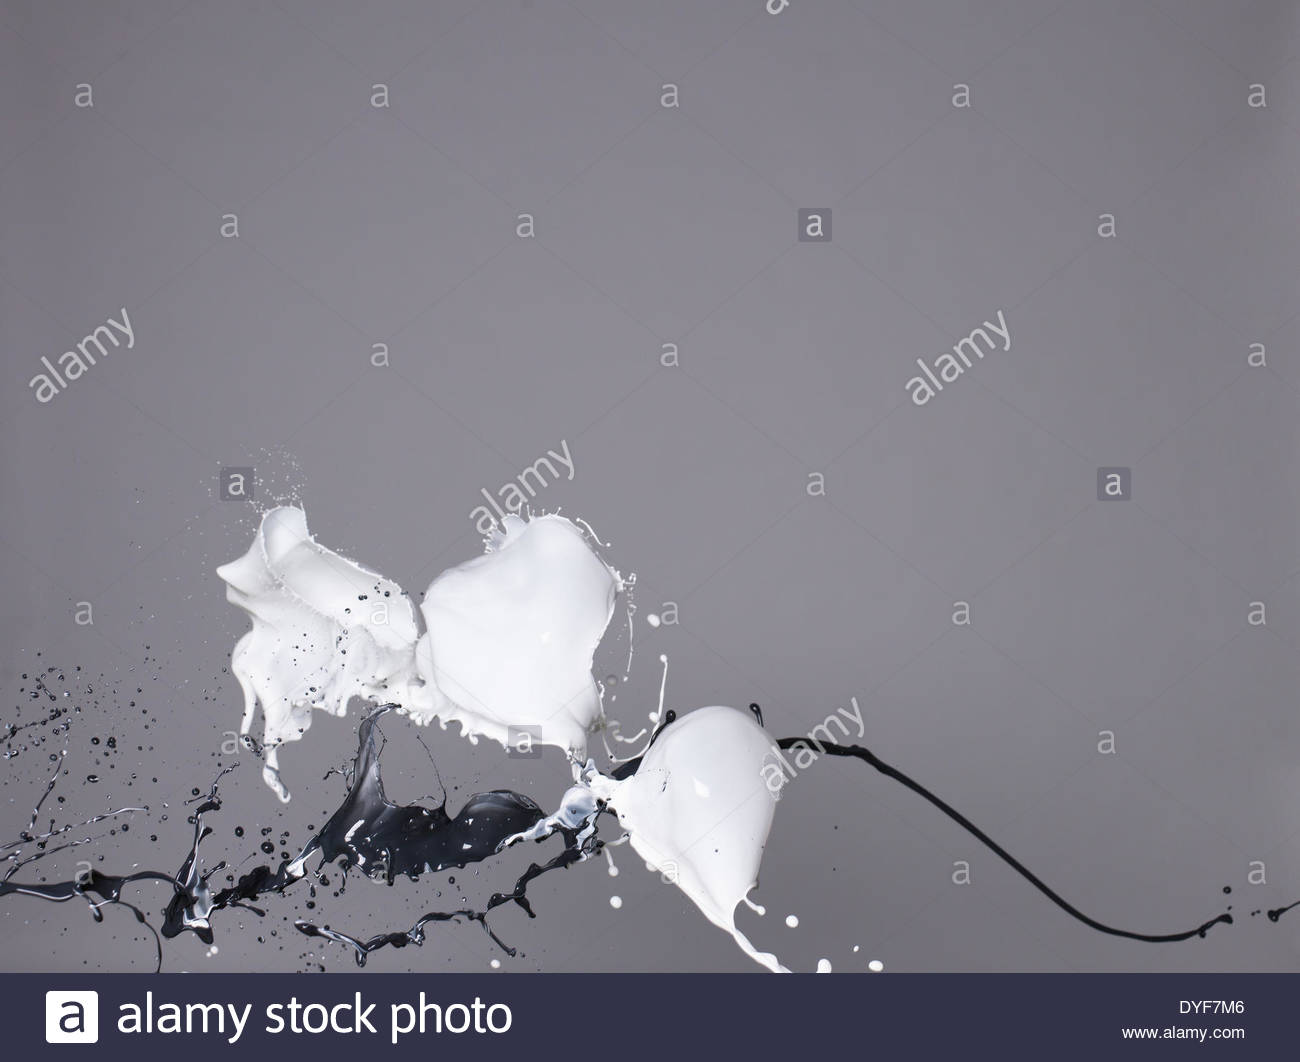 White liquid splashing - Stock Image